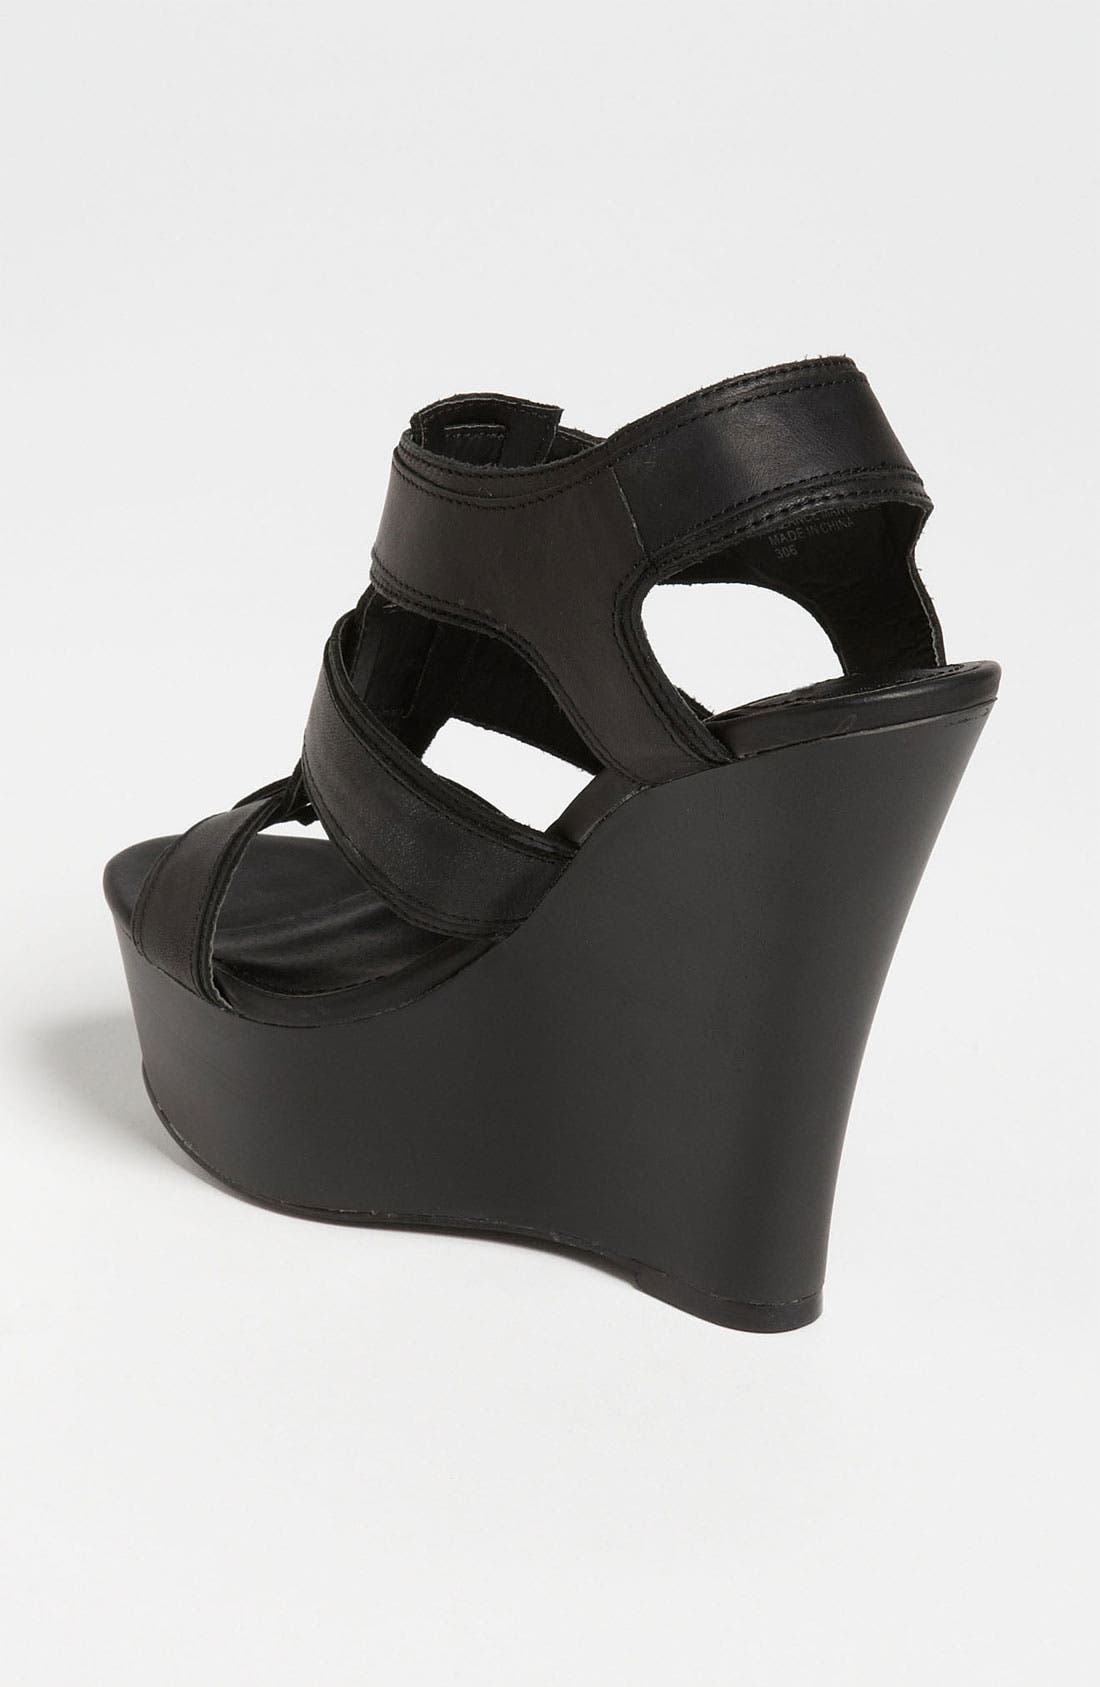 STEVE MADDEN,                             'Wanting' Wedge Sandal,                             Alternate thumbnail 3, color,                             001